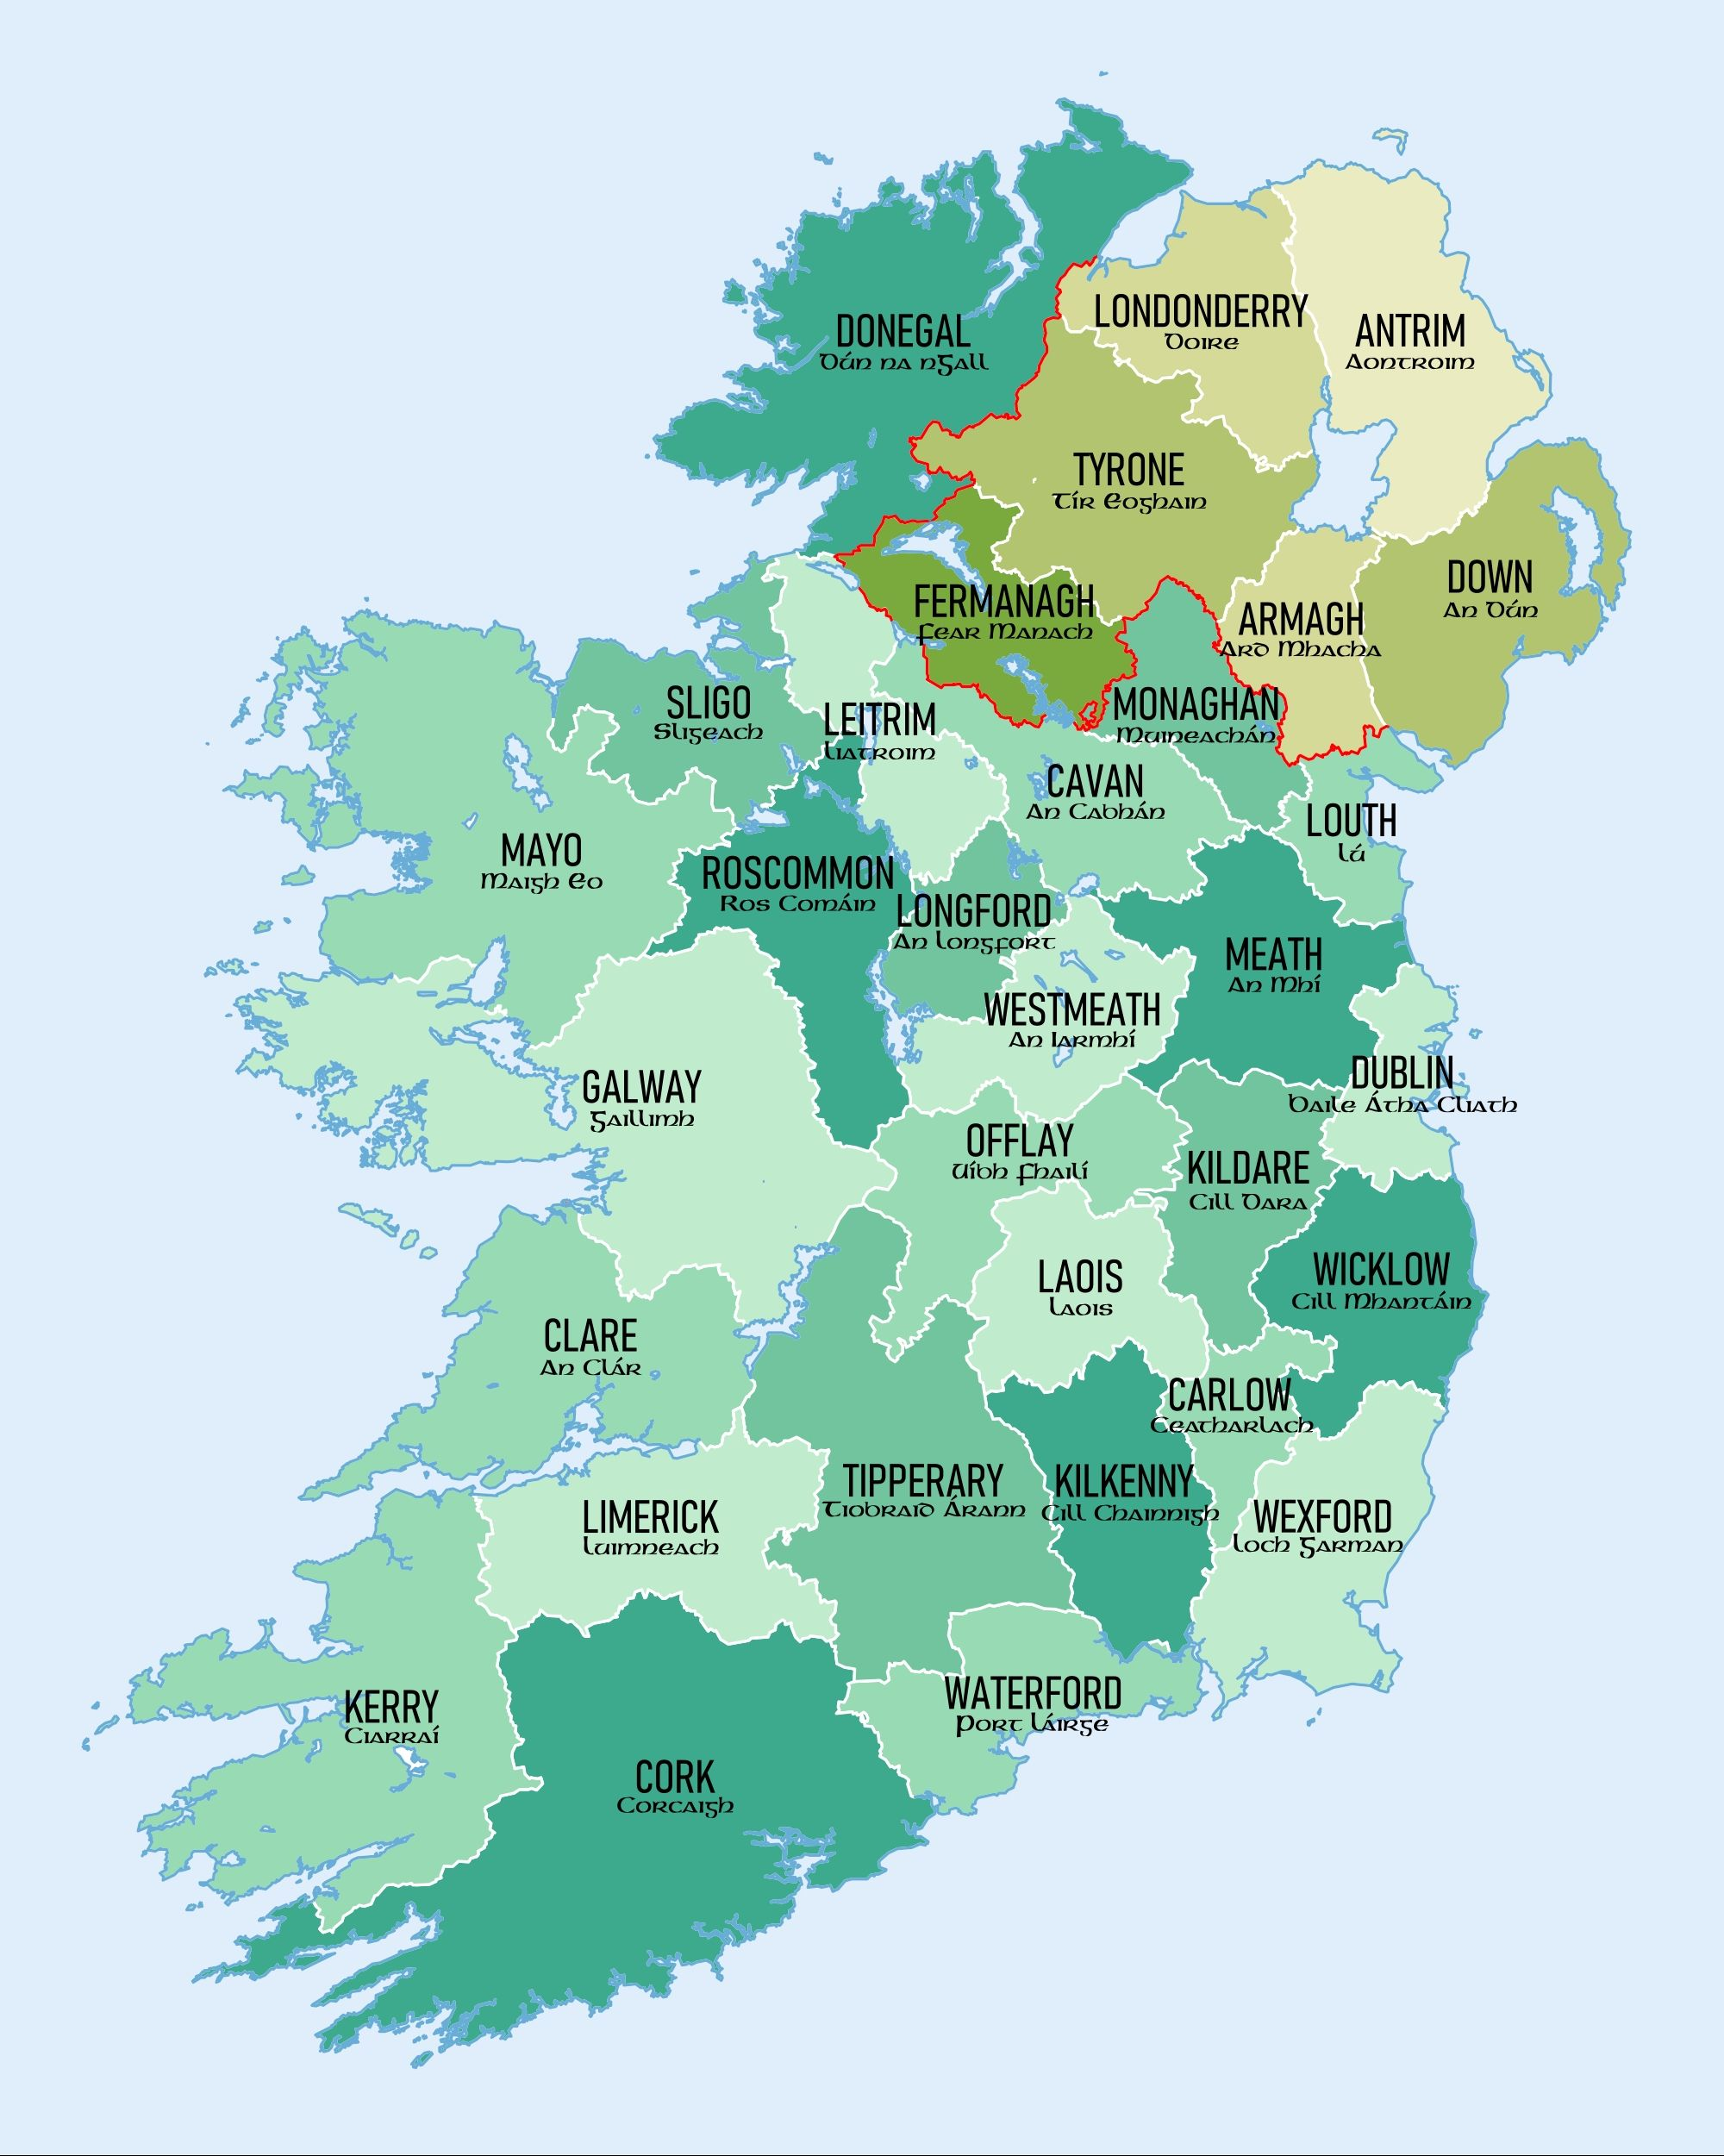 Map Of Ireland With Islands.Pin By Cayman Islands On Cayman Islands Photographyy Ireland Map